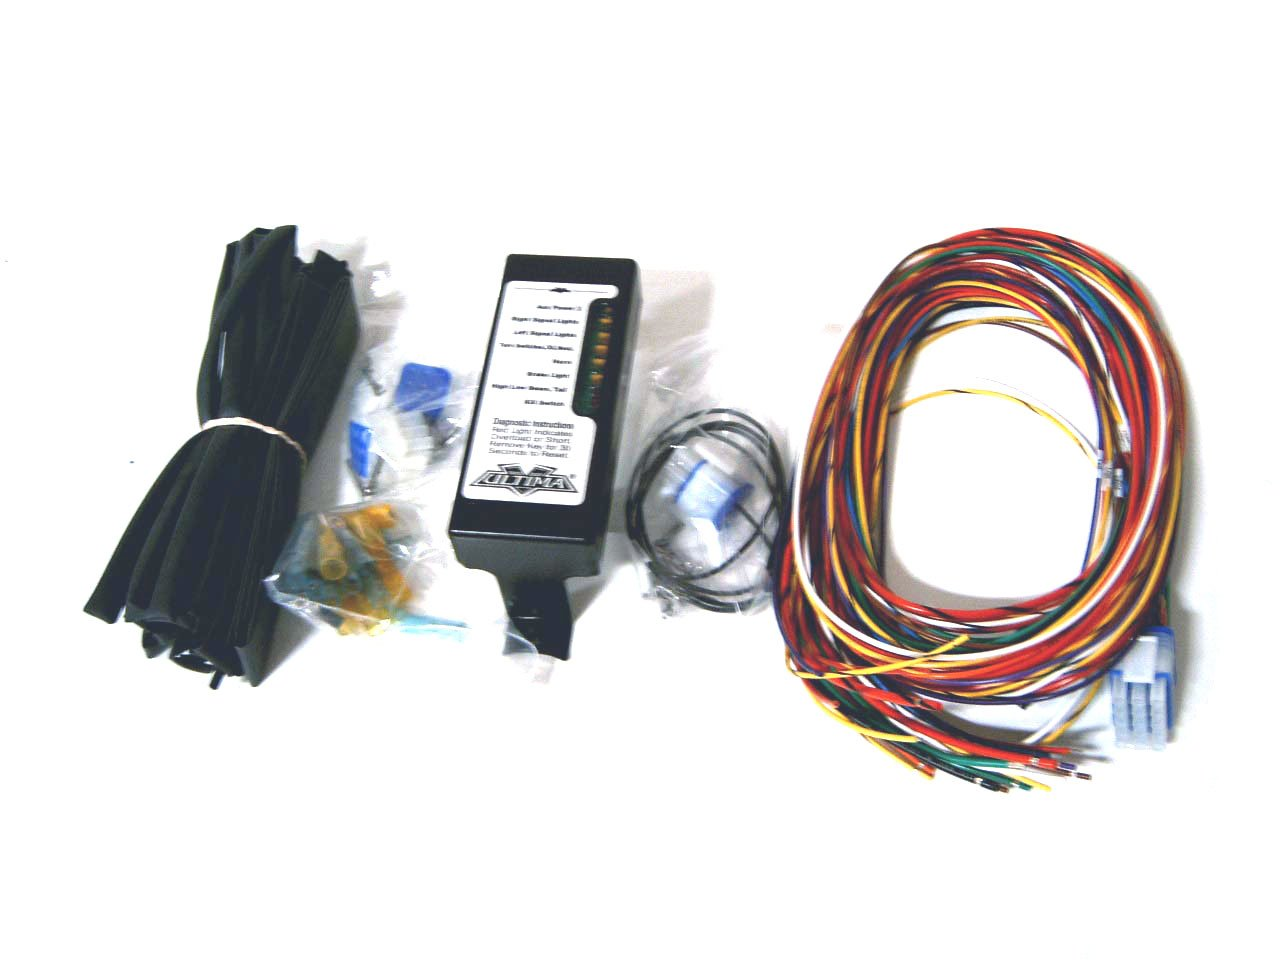 61DV2Bq5%2BHL._SL1280_ amazon com ultima complete wiring harness kit for harley davidson universal wiring harness kits at webbmarketing.co